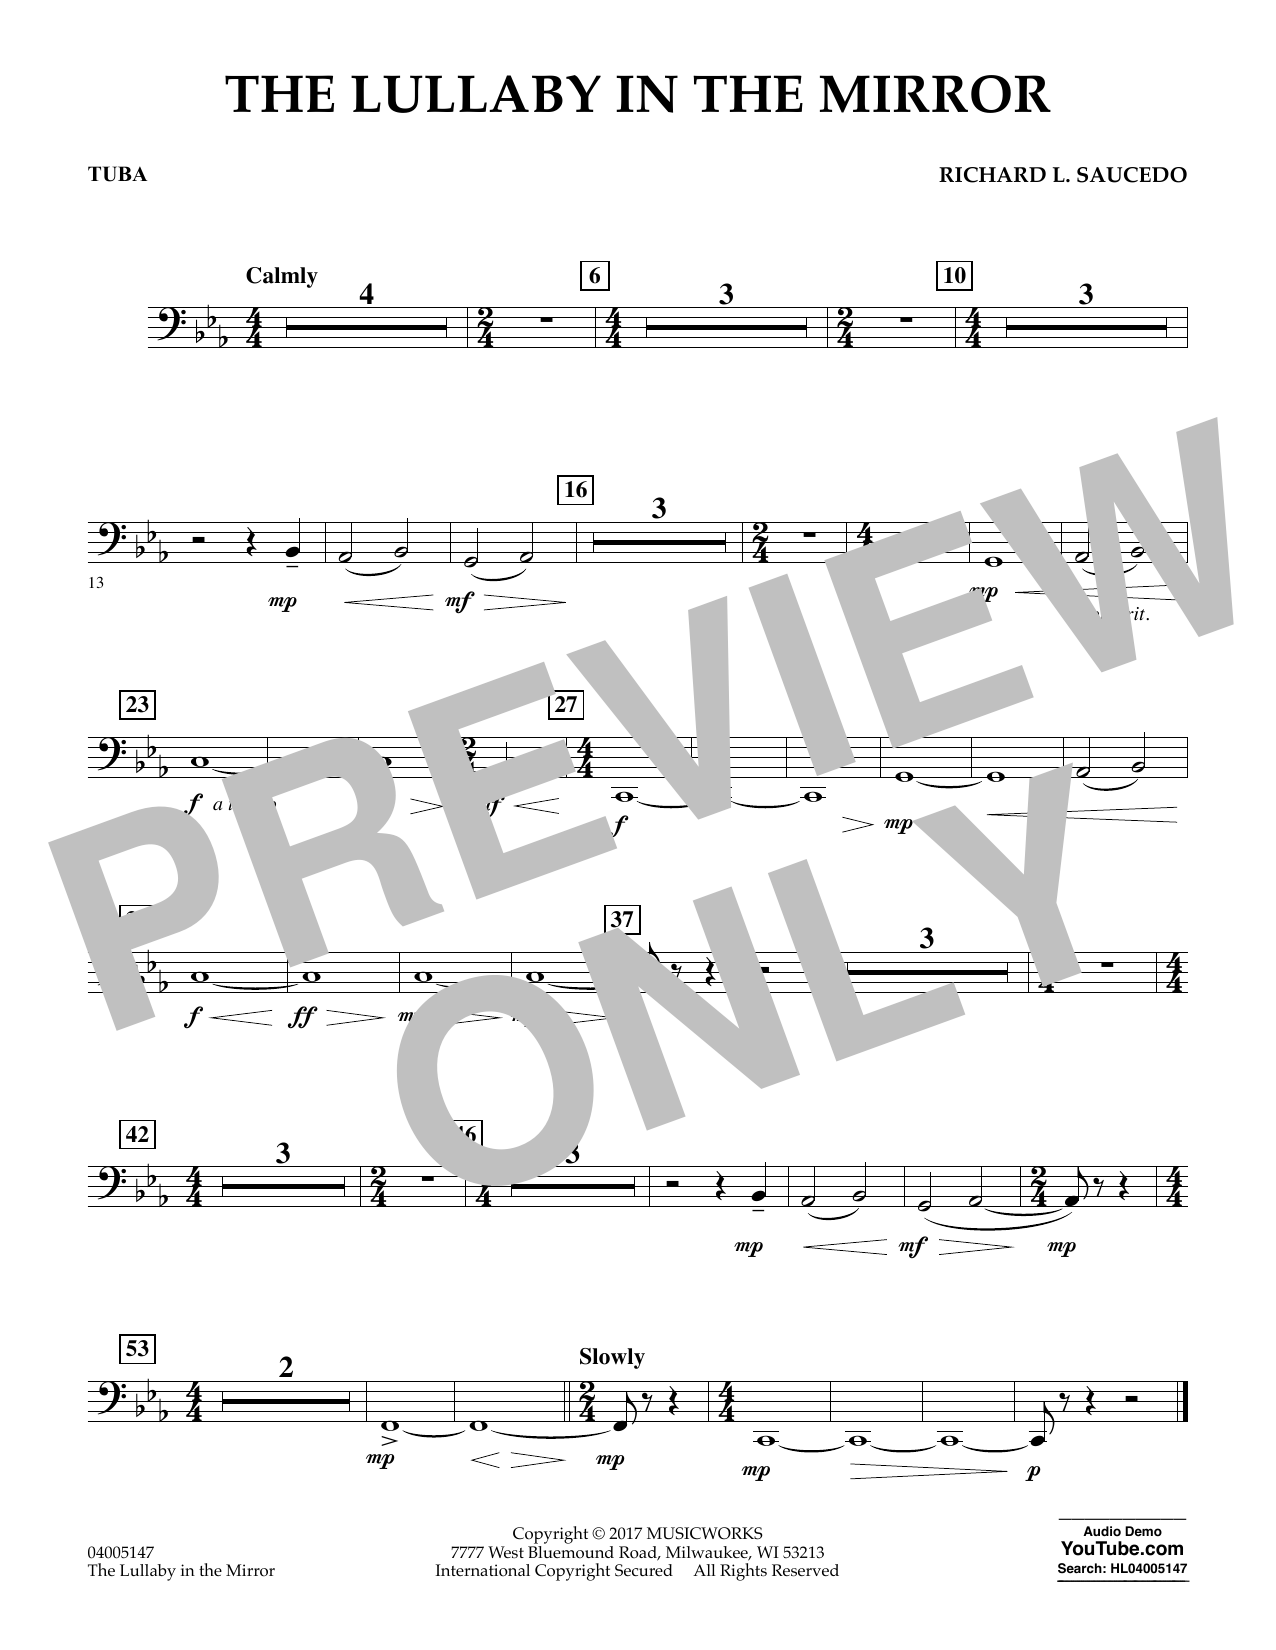 Richard L. Saucedo The Lullaby in the Mirror - Tuba sheet music notes and chords. Download Printable PDF.